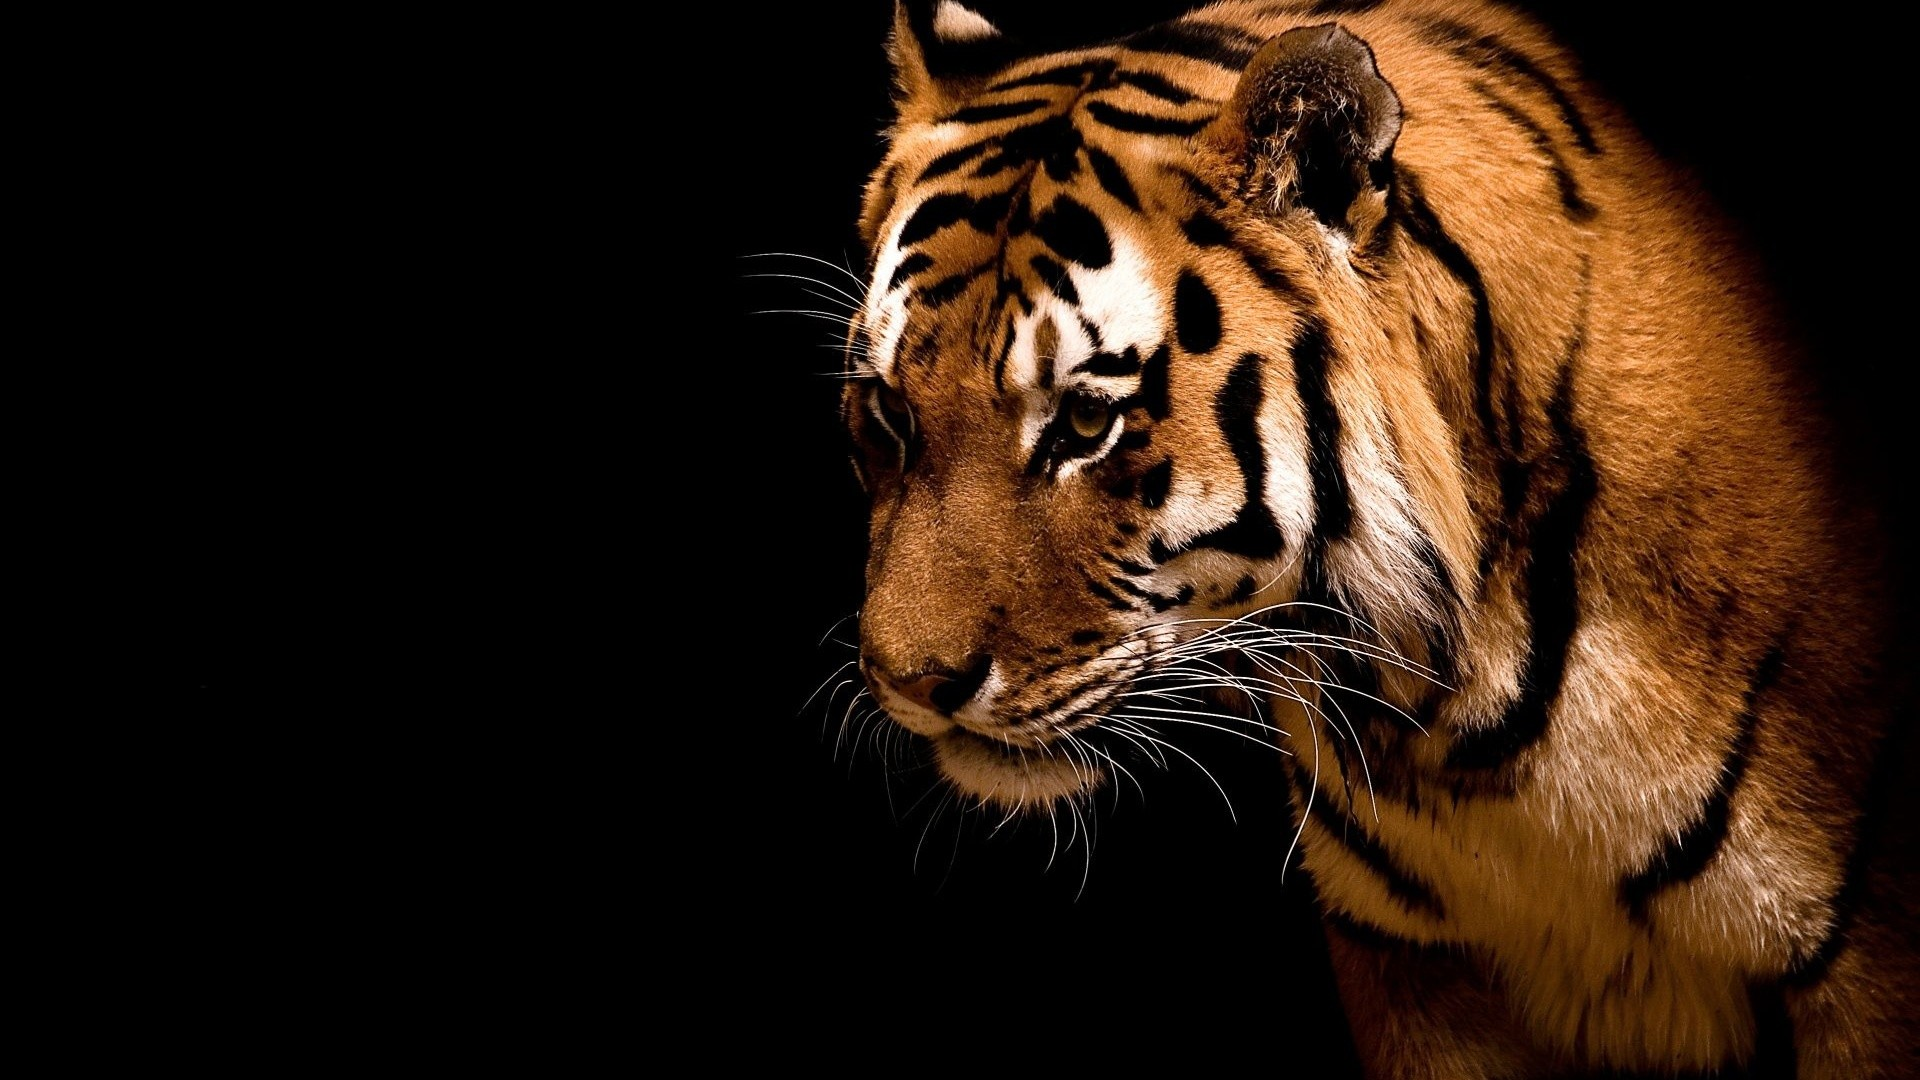 Tiger in the dark. How to set wallpaper on your desktop? Click  the download link from above and set the wallpaper on the desktop from your  OS.